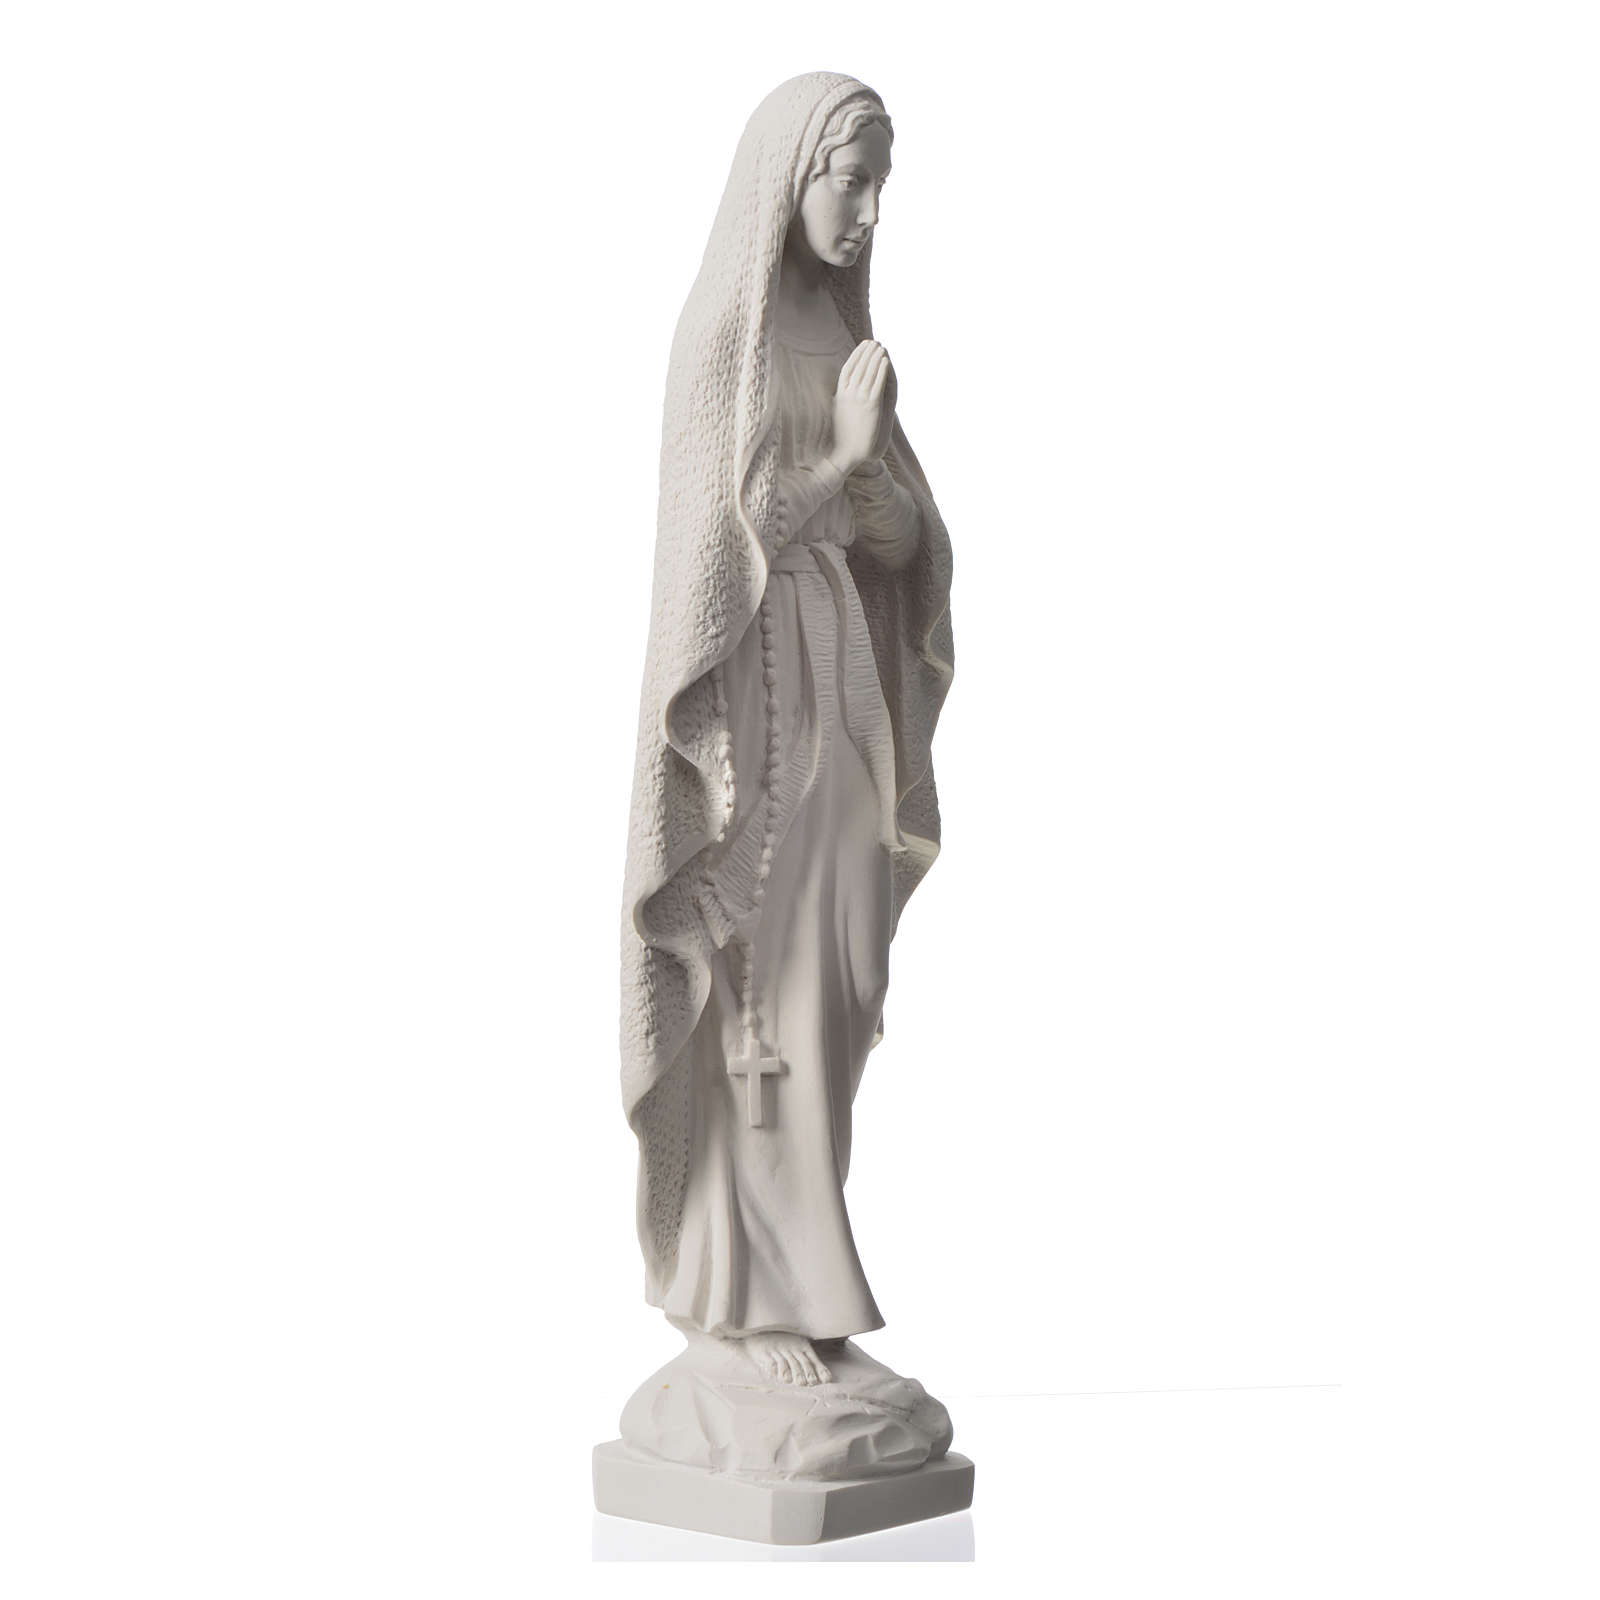 Our Lady of Lourdes statue in reconstituted Carrara marble, 19.5 inches 4